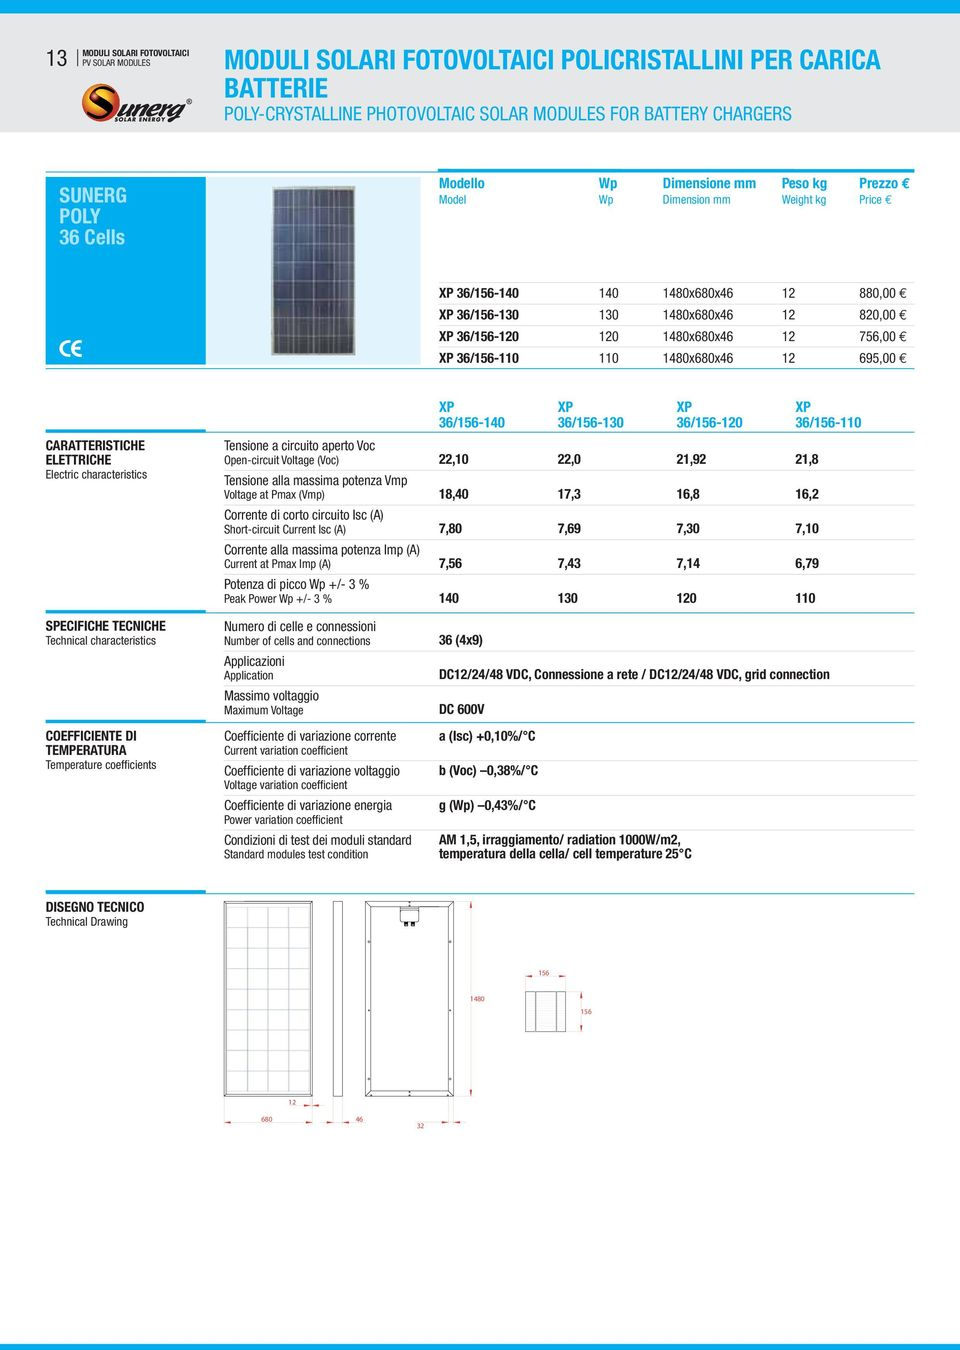 XP 36/156-110 110 1480x680x46 12 695,00 CARATTERISTICHE ELETTRICHE Electric characteristics SPECIFICHE TECNICHE Technical characteristics COEFFICIENTE DI TEMPERATURA Temperature coefficients Tensione